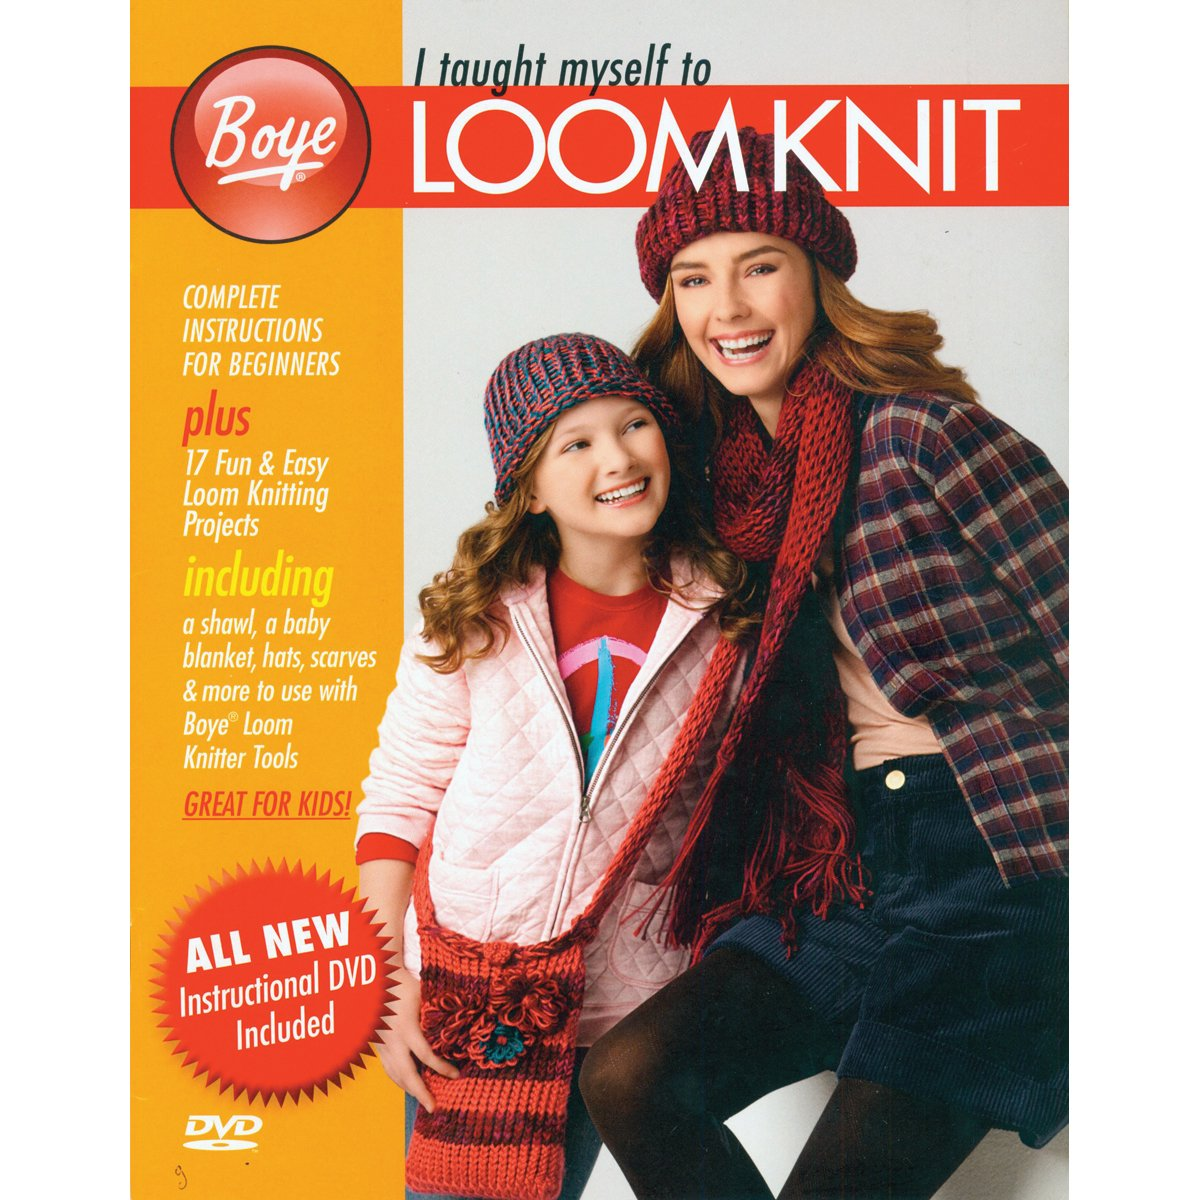 Amazon.com: Wrights 3001001 I Taught Myself To Loom Knit Provo Book